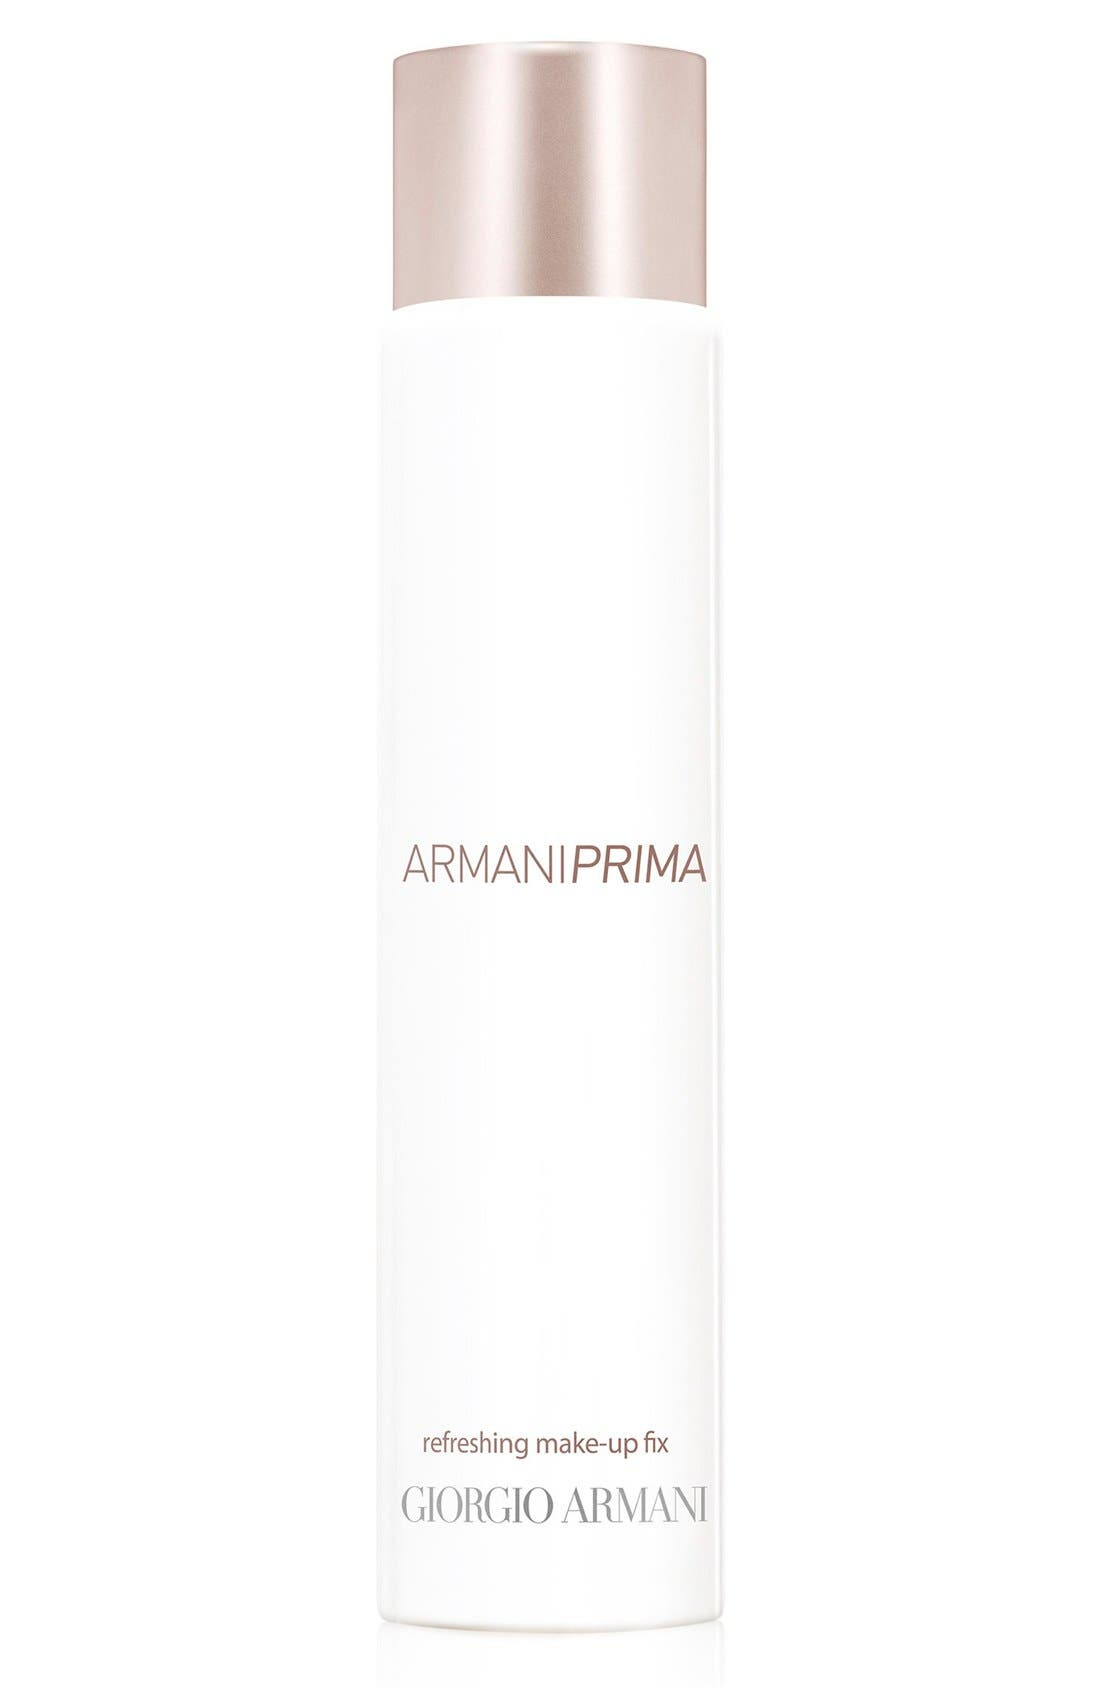 Giorgio Armani 'Prima' Refreshing Makeup Fix